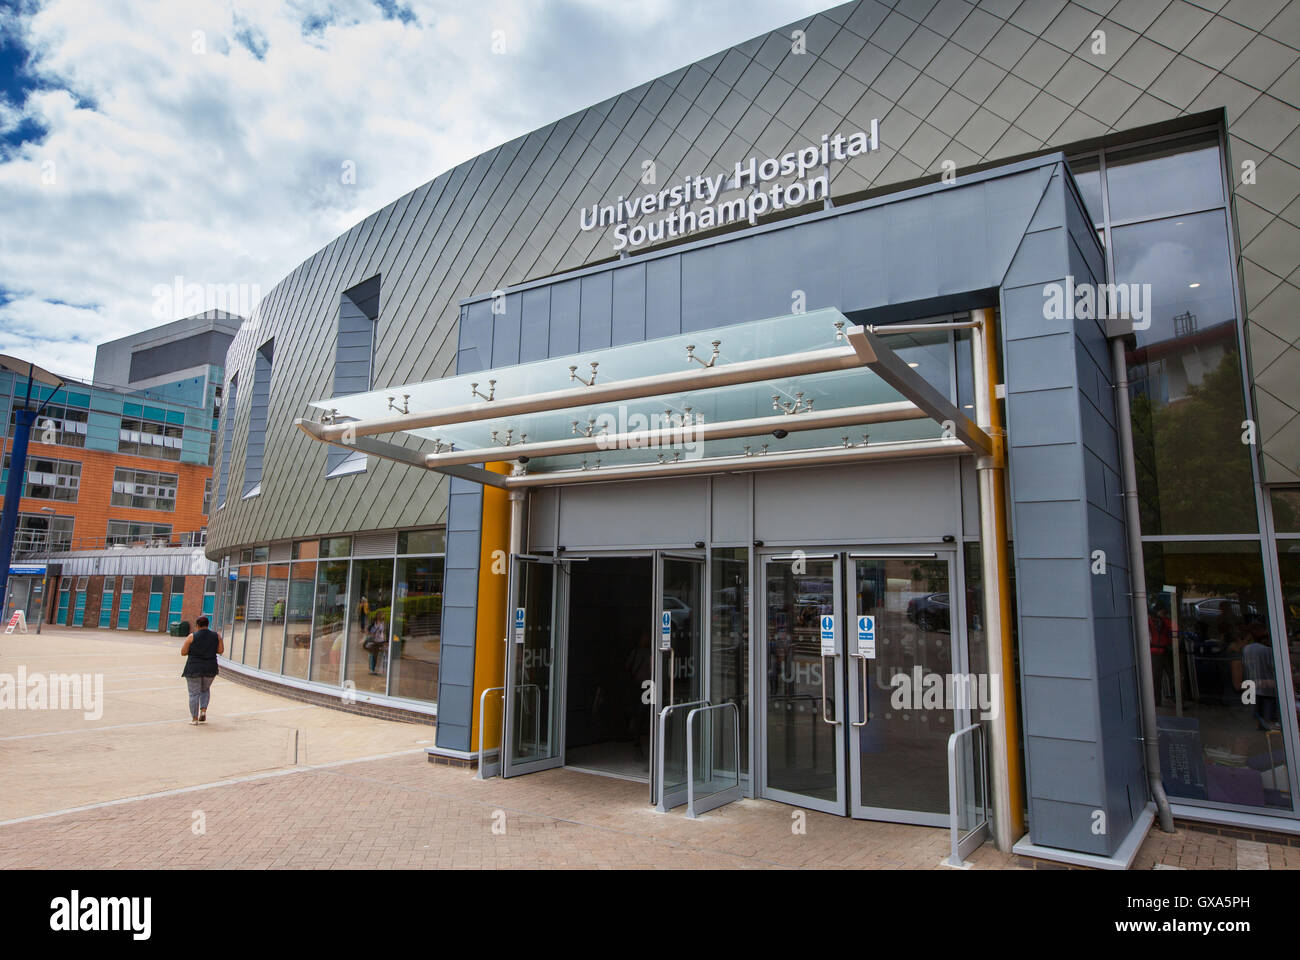 Southampton General Hospital (also know as University Hospital Southampton) photo of the new main entrance opened - Stock Image